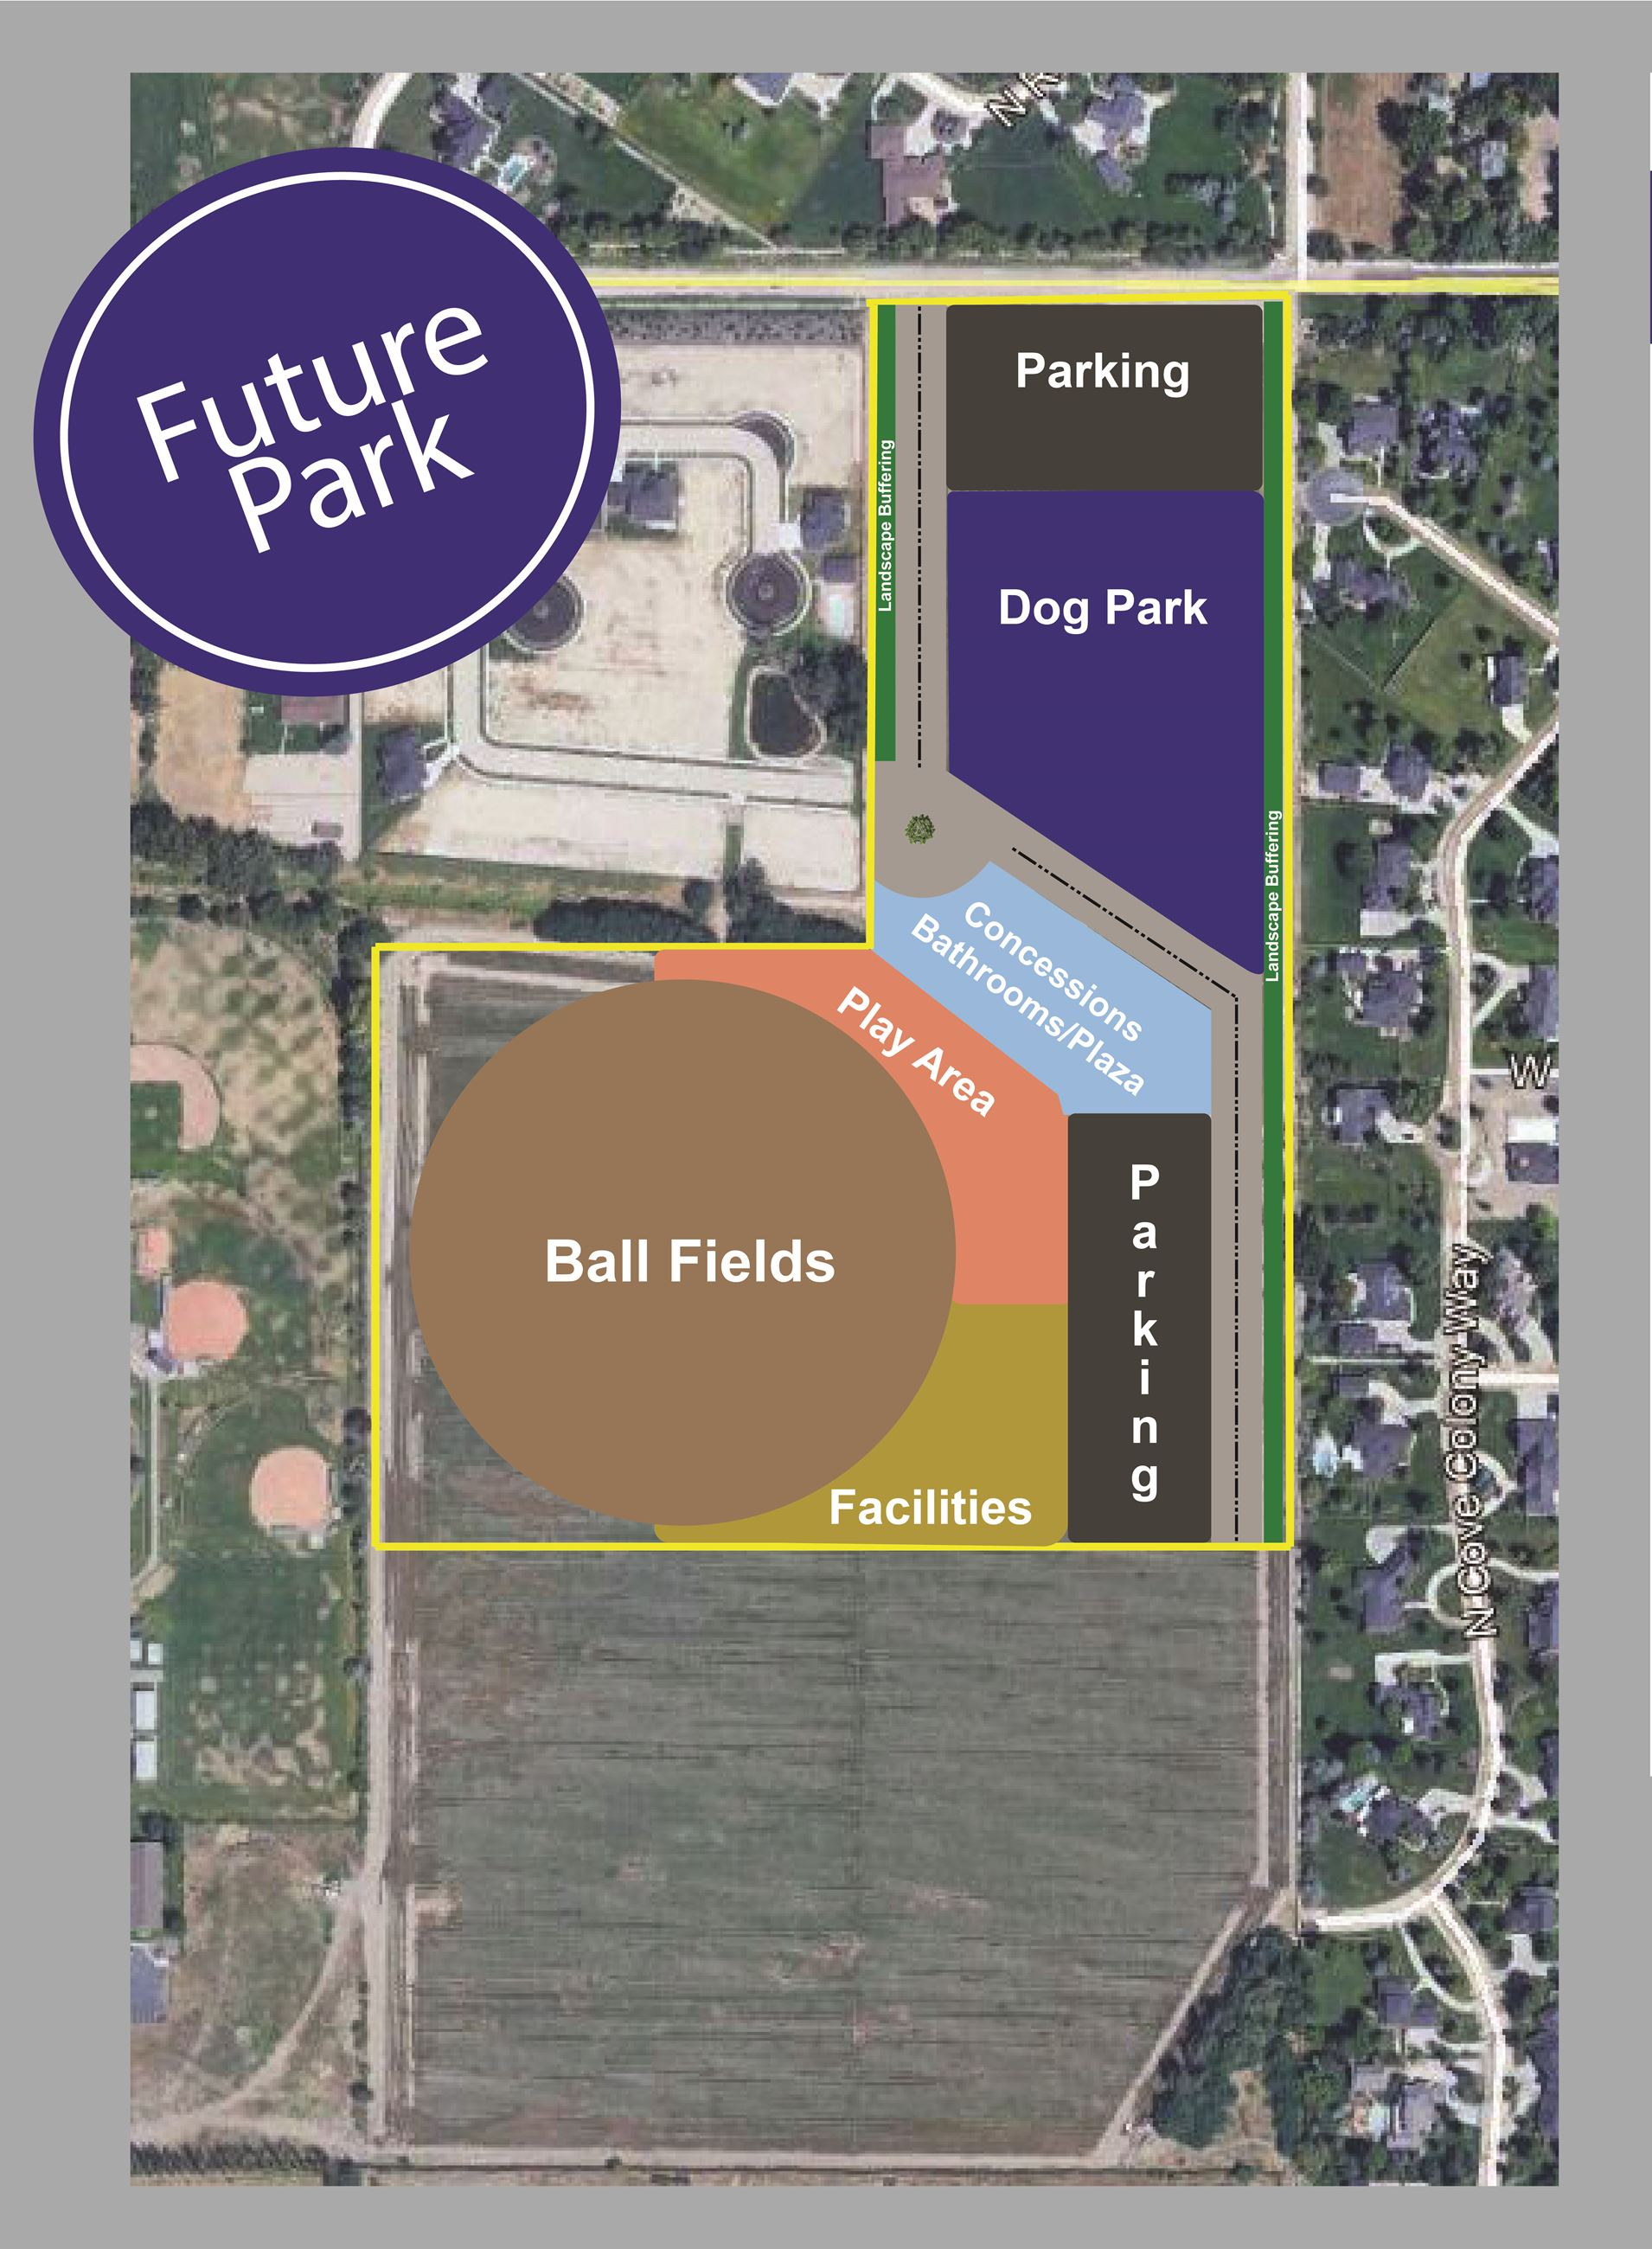 West Park - Future Park Map